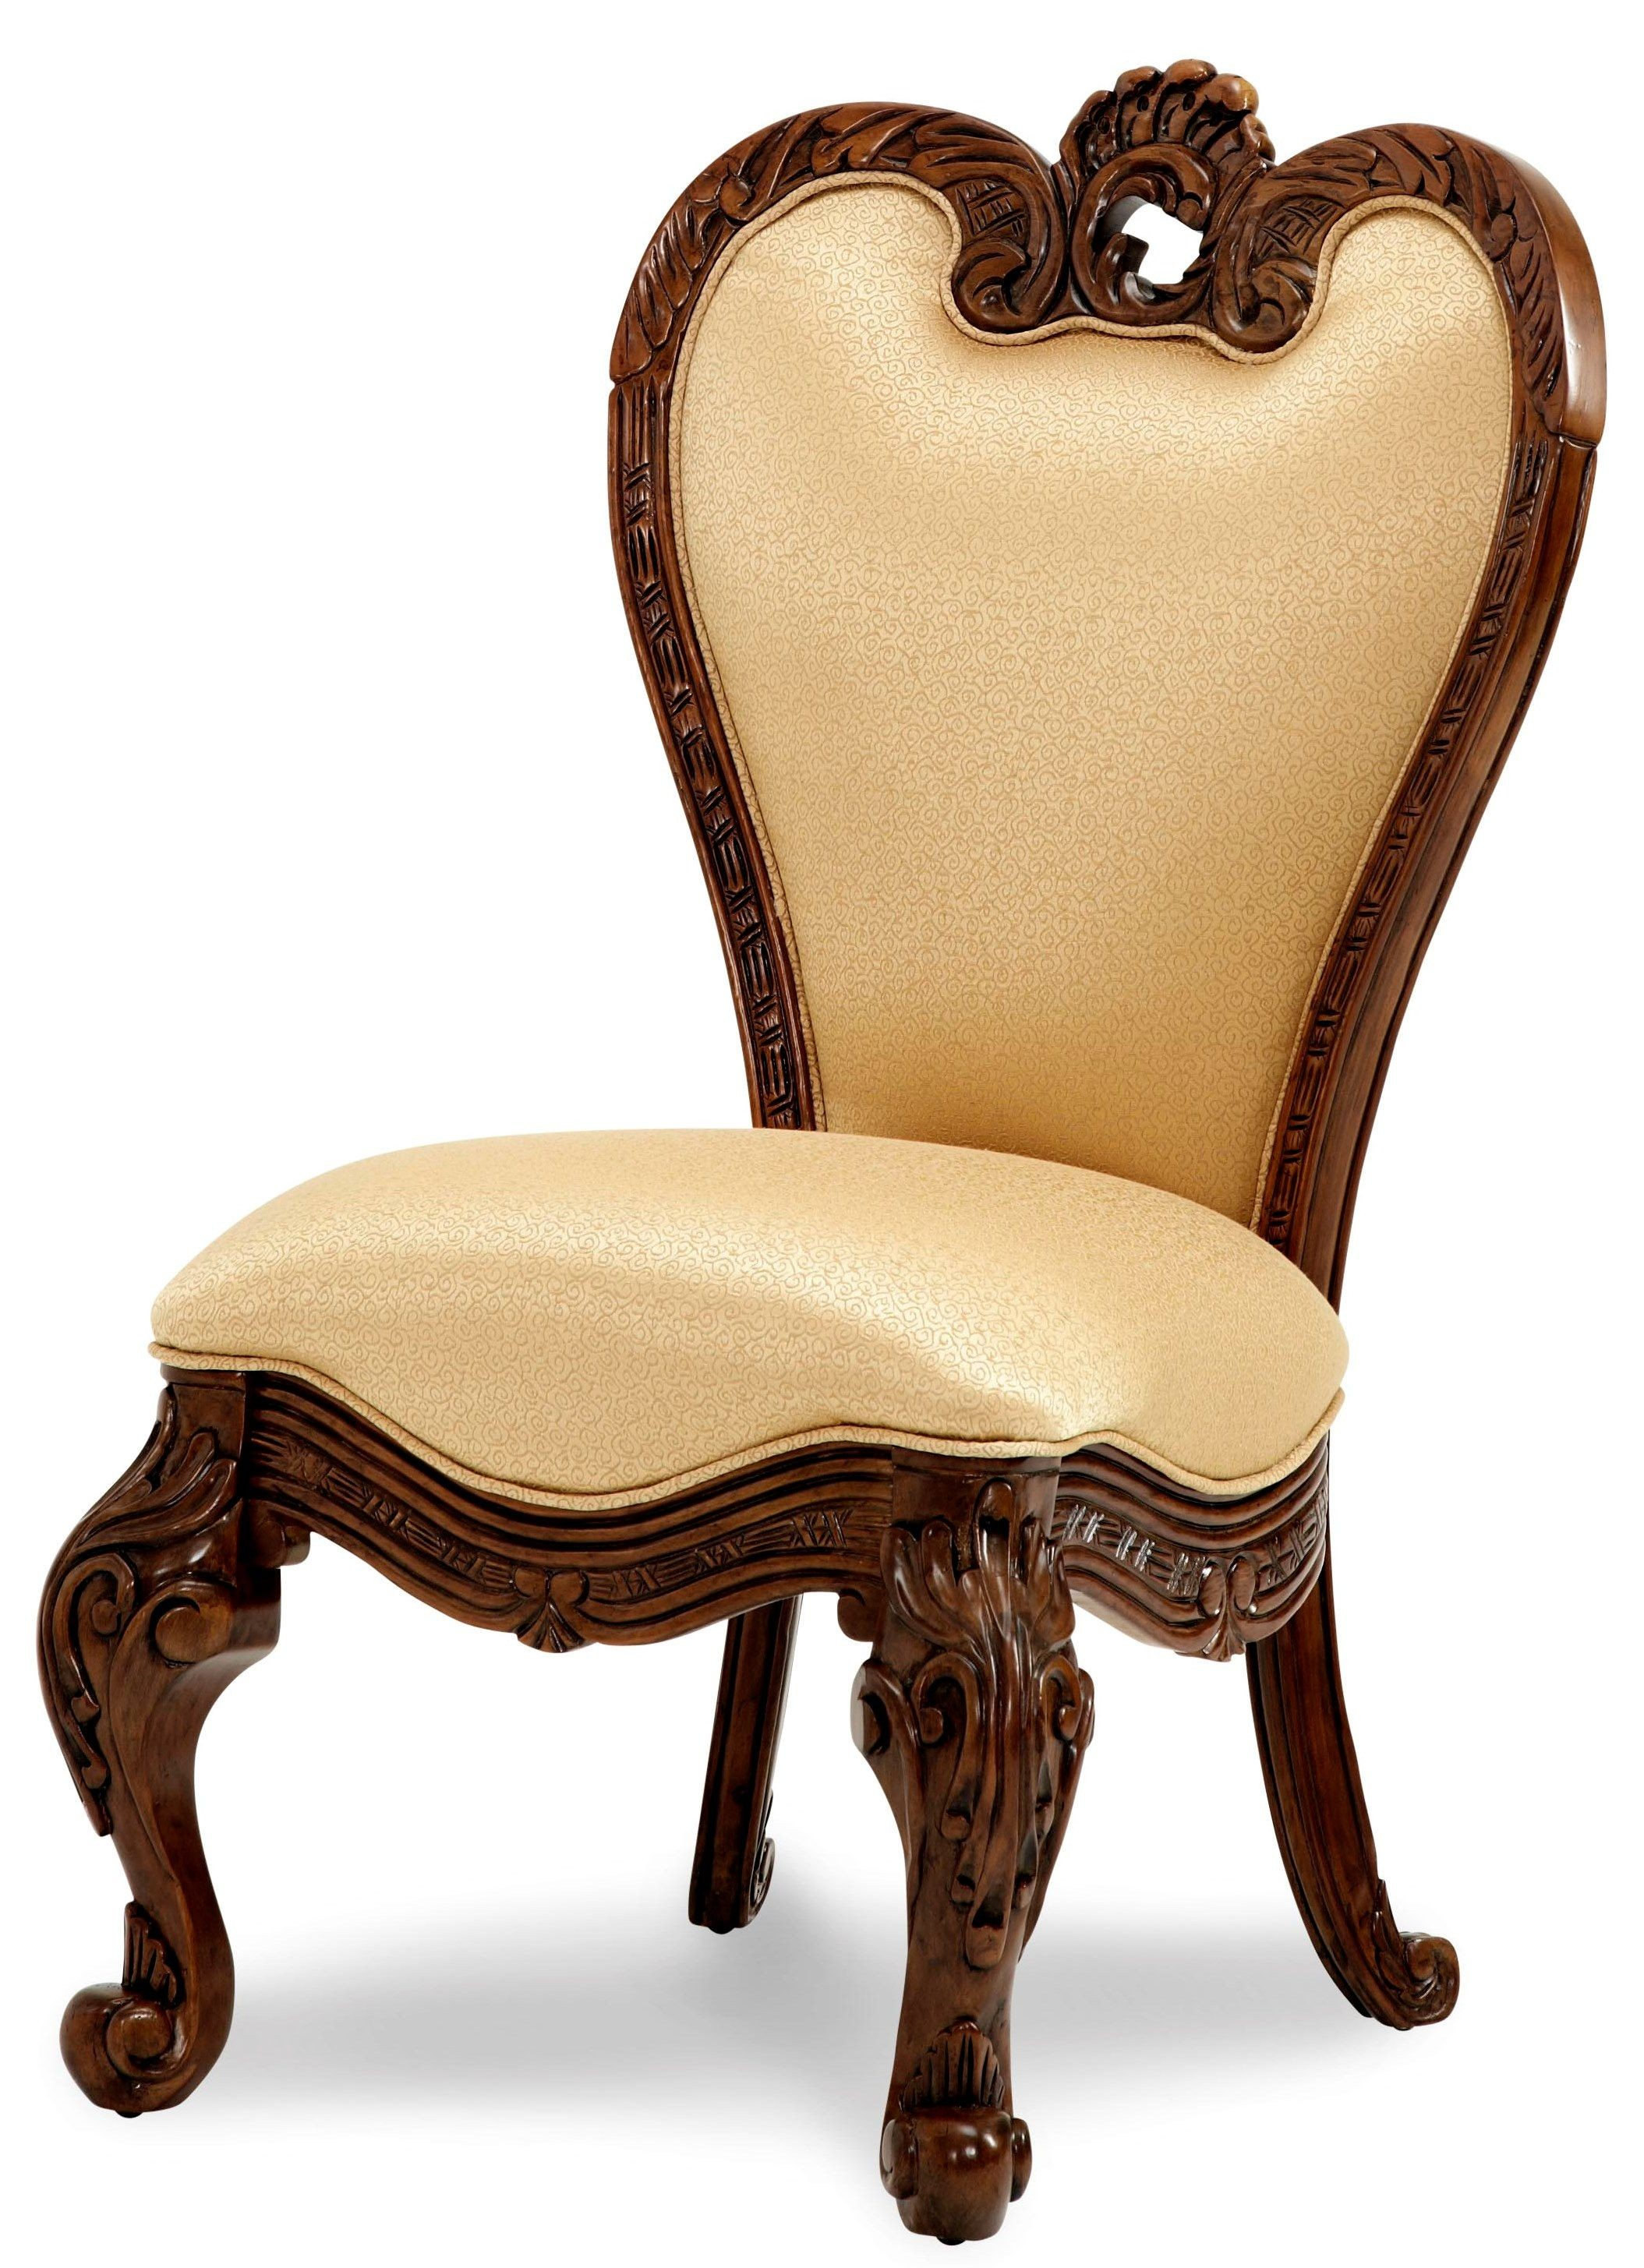 Vanity Chair Palais Royale Vanity Chair From Aico 71044 35 Coleman